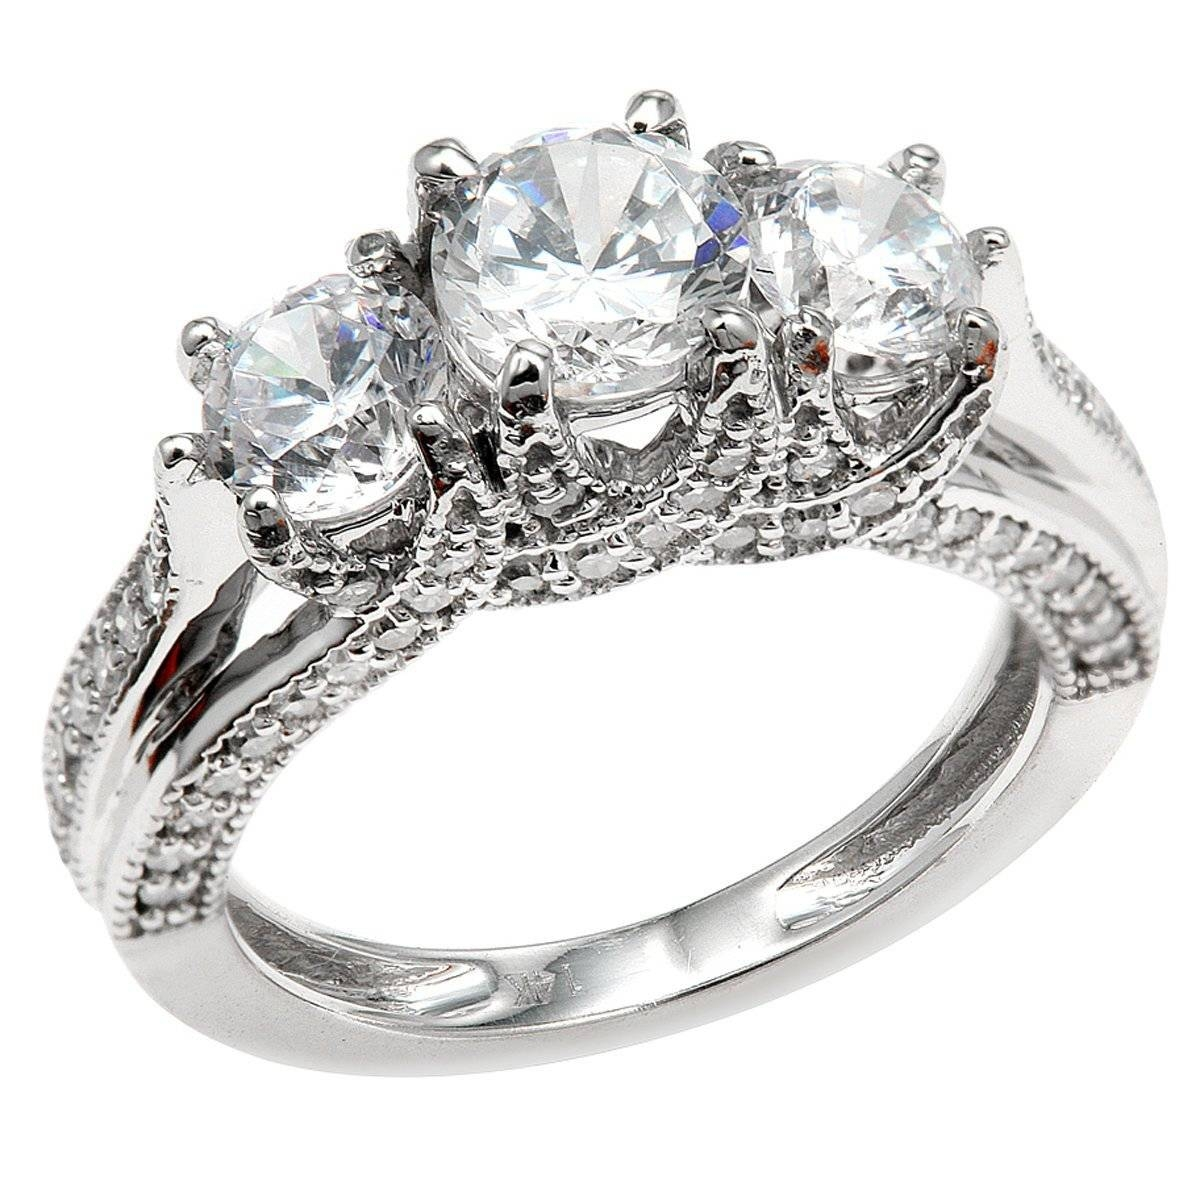 3 Stone Engagement Rings – A Perfect Way To Make Your Beloved Feel Pertaining To Three Stone Wedding Rings (View 1 of 15)